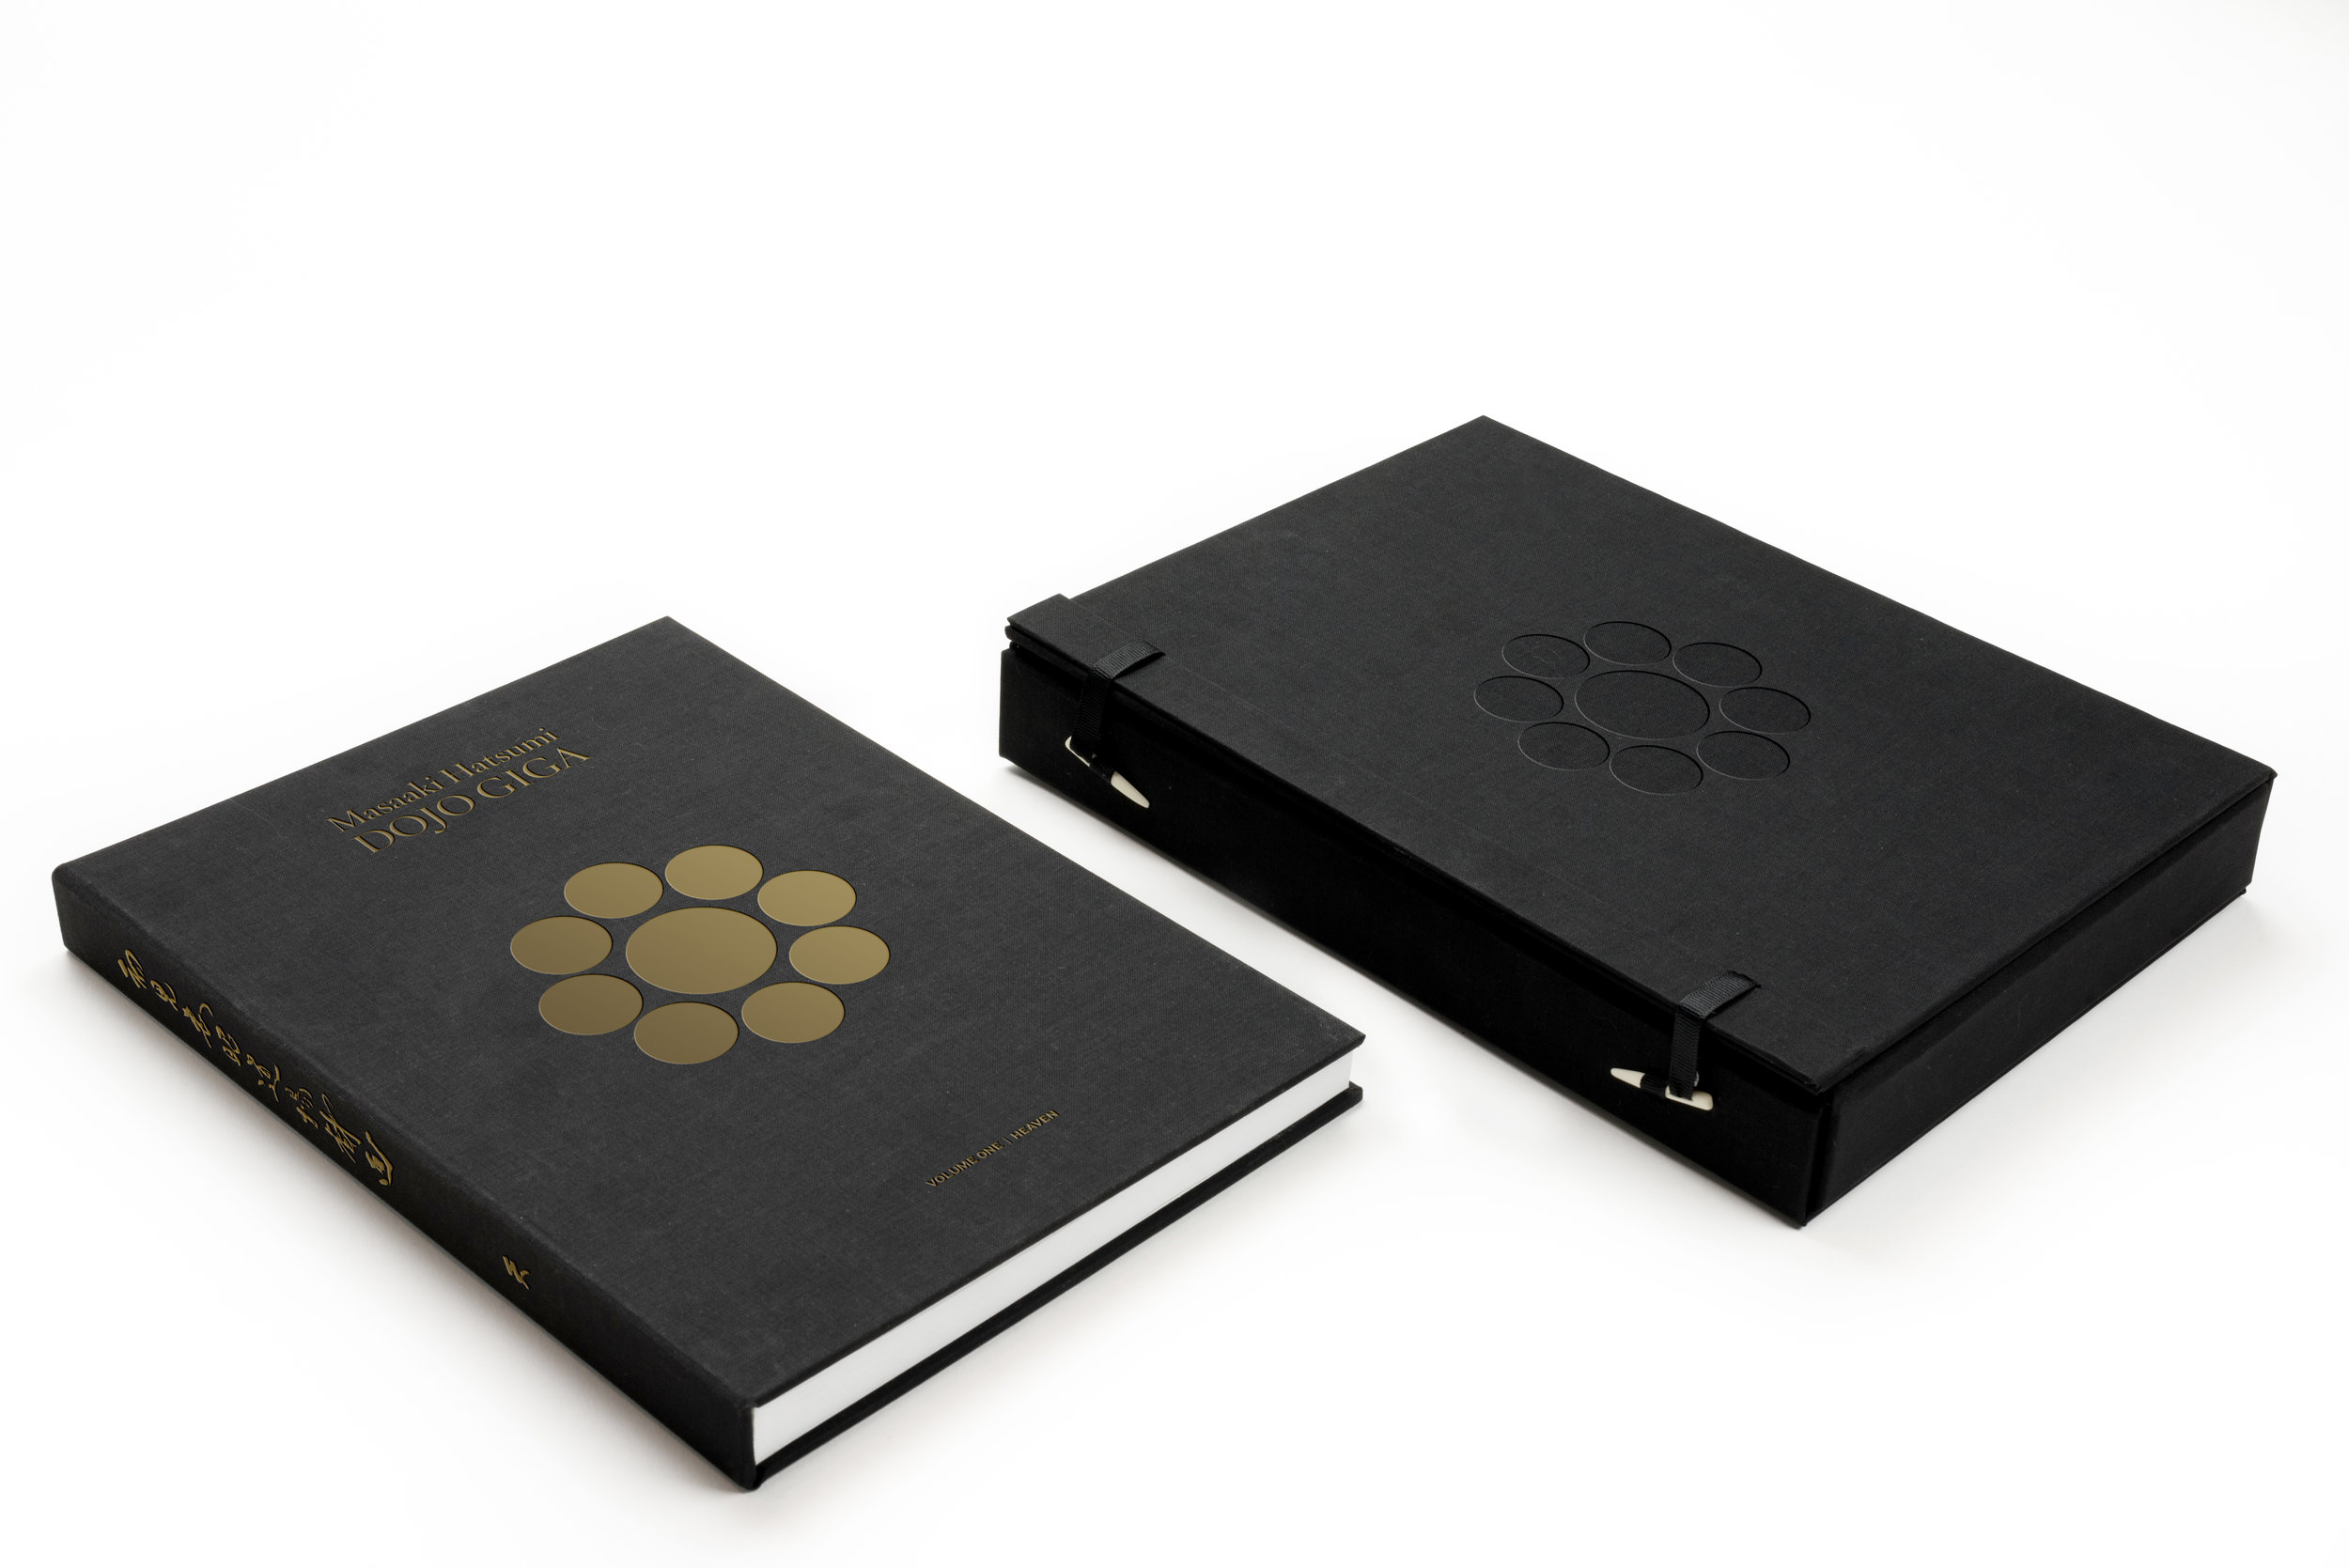 The Collector Edition comes with a traditional Japanese book box with a blind emboss to match the cover of the book.